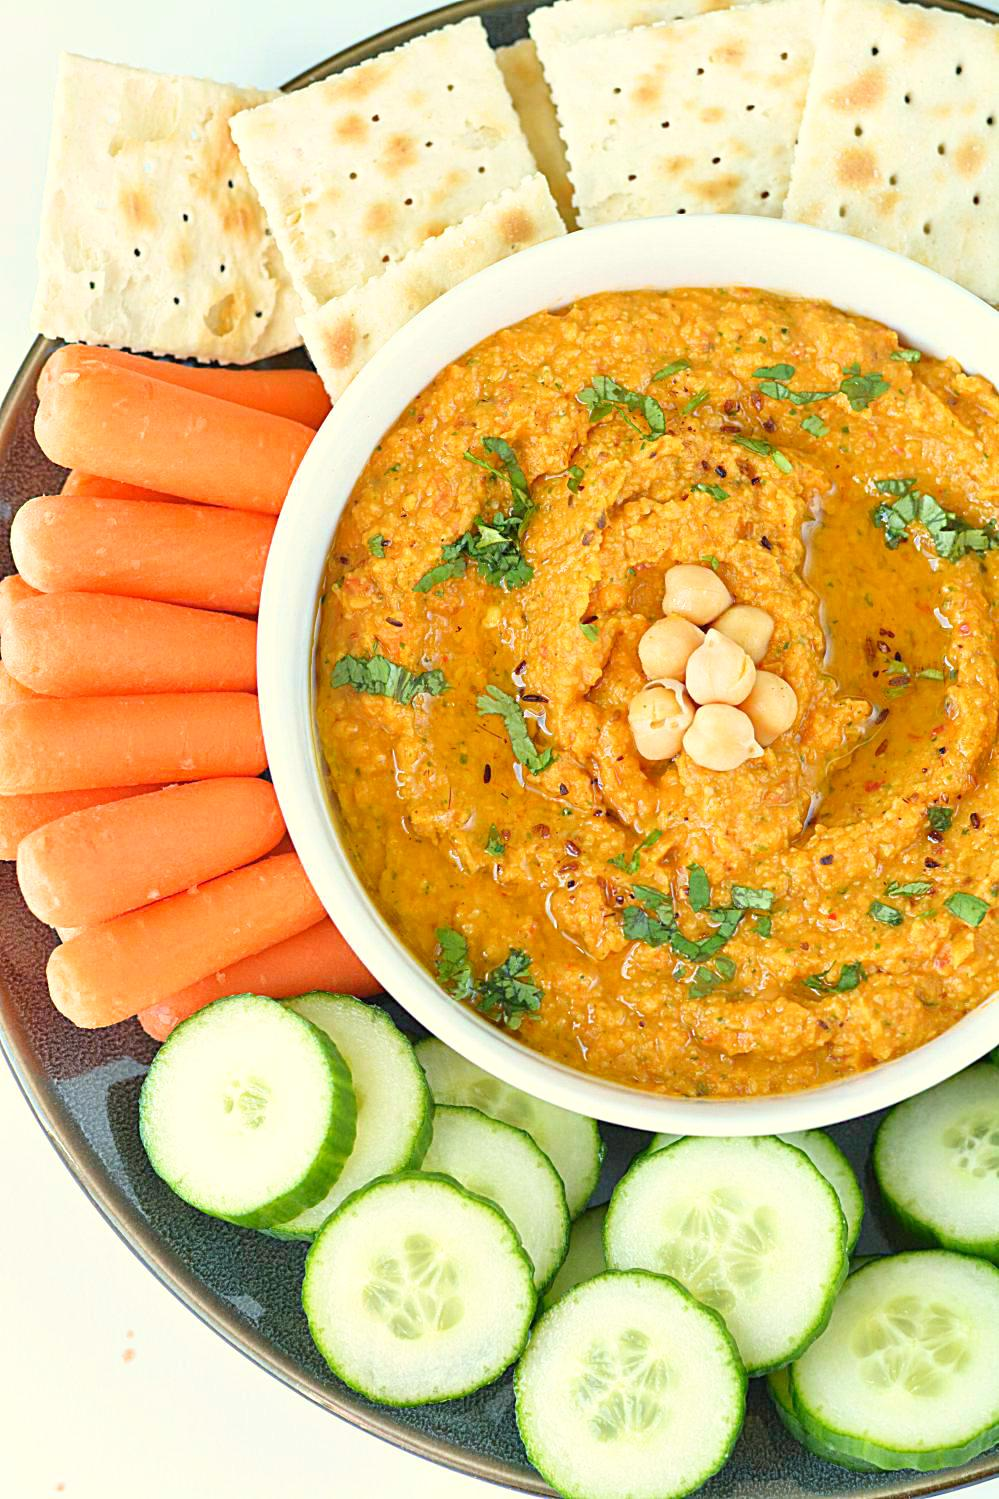 Once hummus is ready, refrigerate it for an hour. It tastes delicious ...